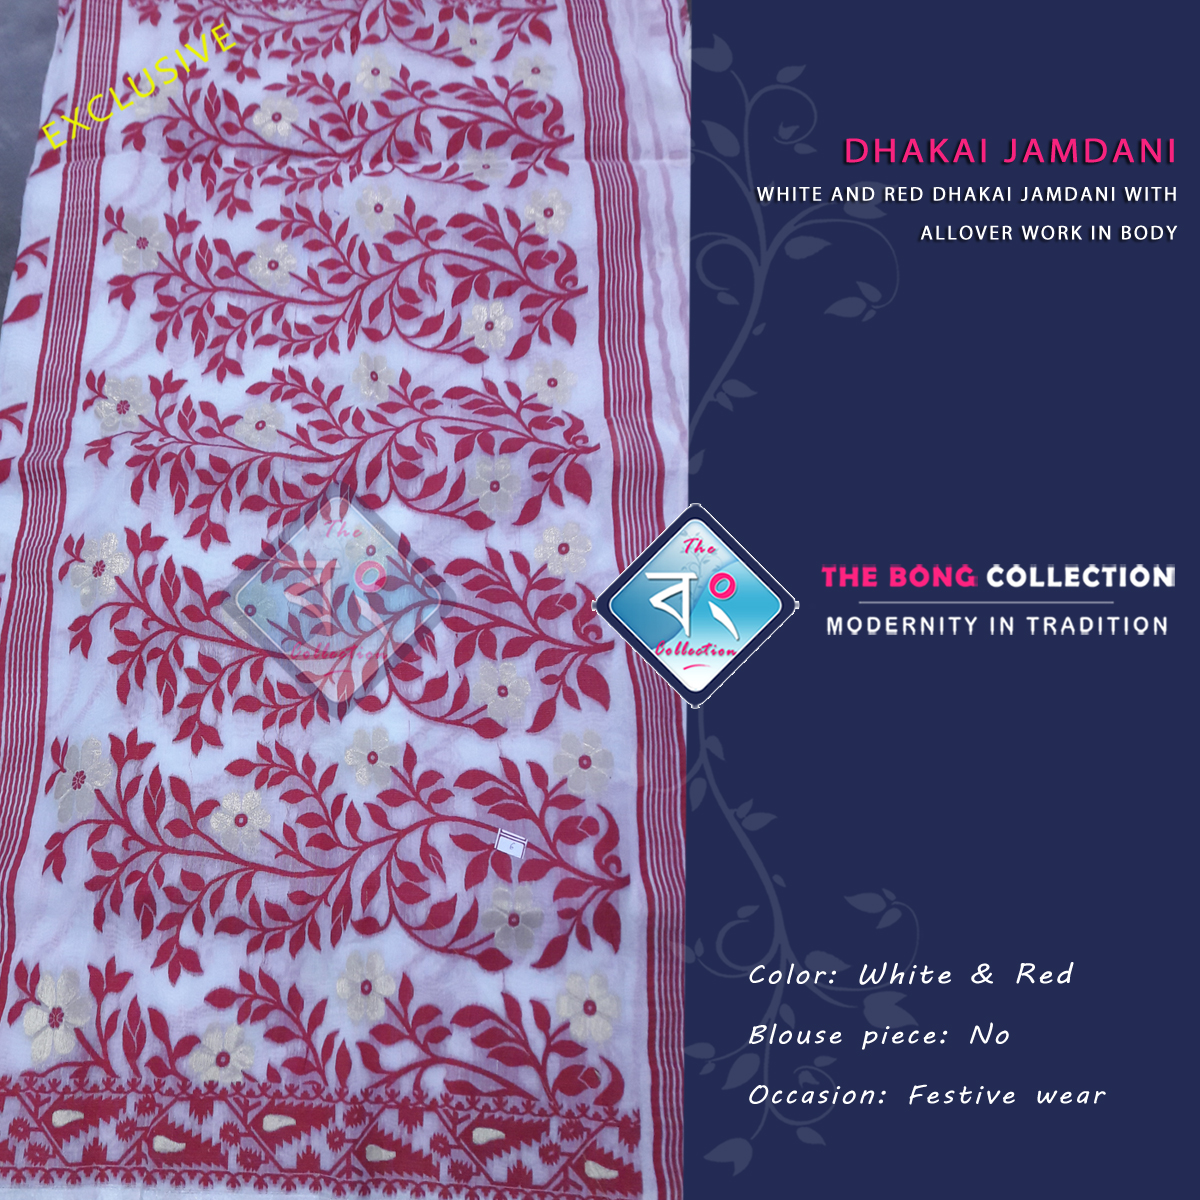 1ce92a602f Dhakai Jamdani With Allover Work - White And Red - The Bong Collection